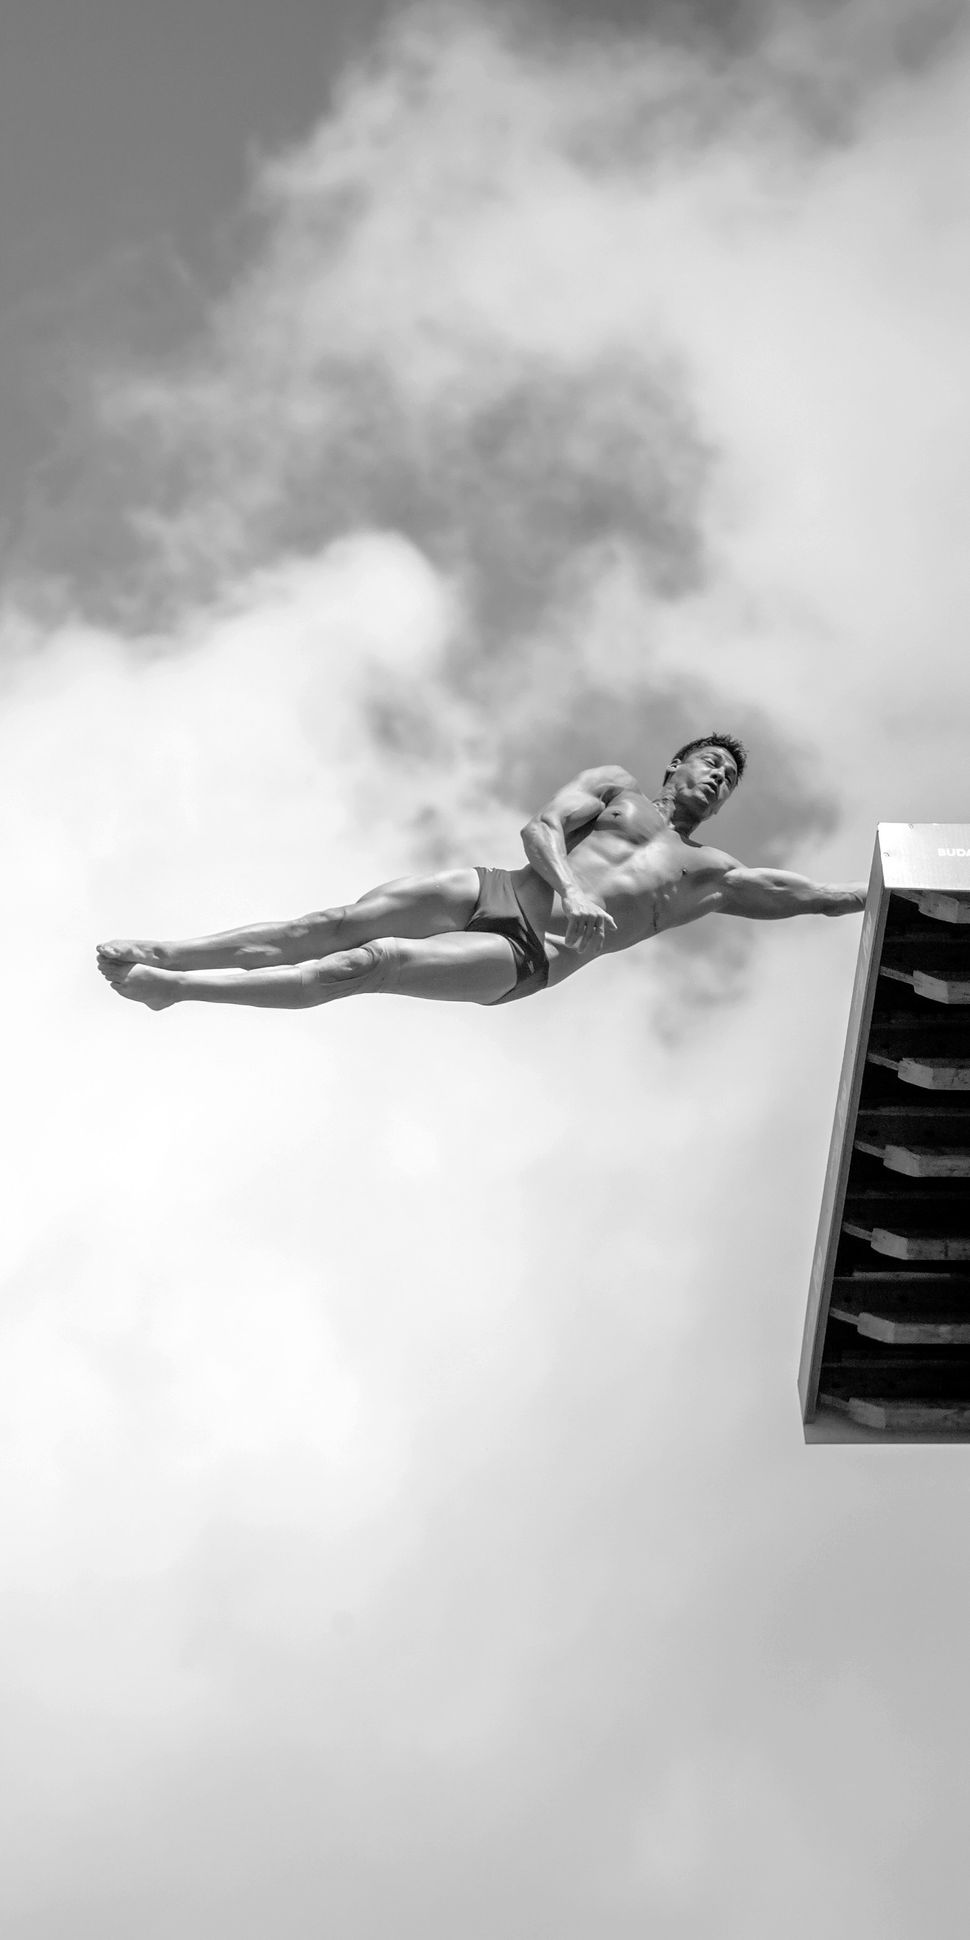 The high-dive competition at the 17th FINA World Championship.